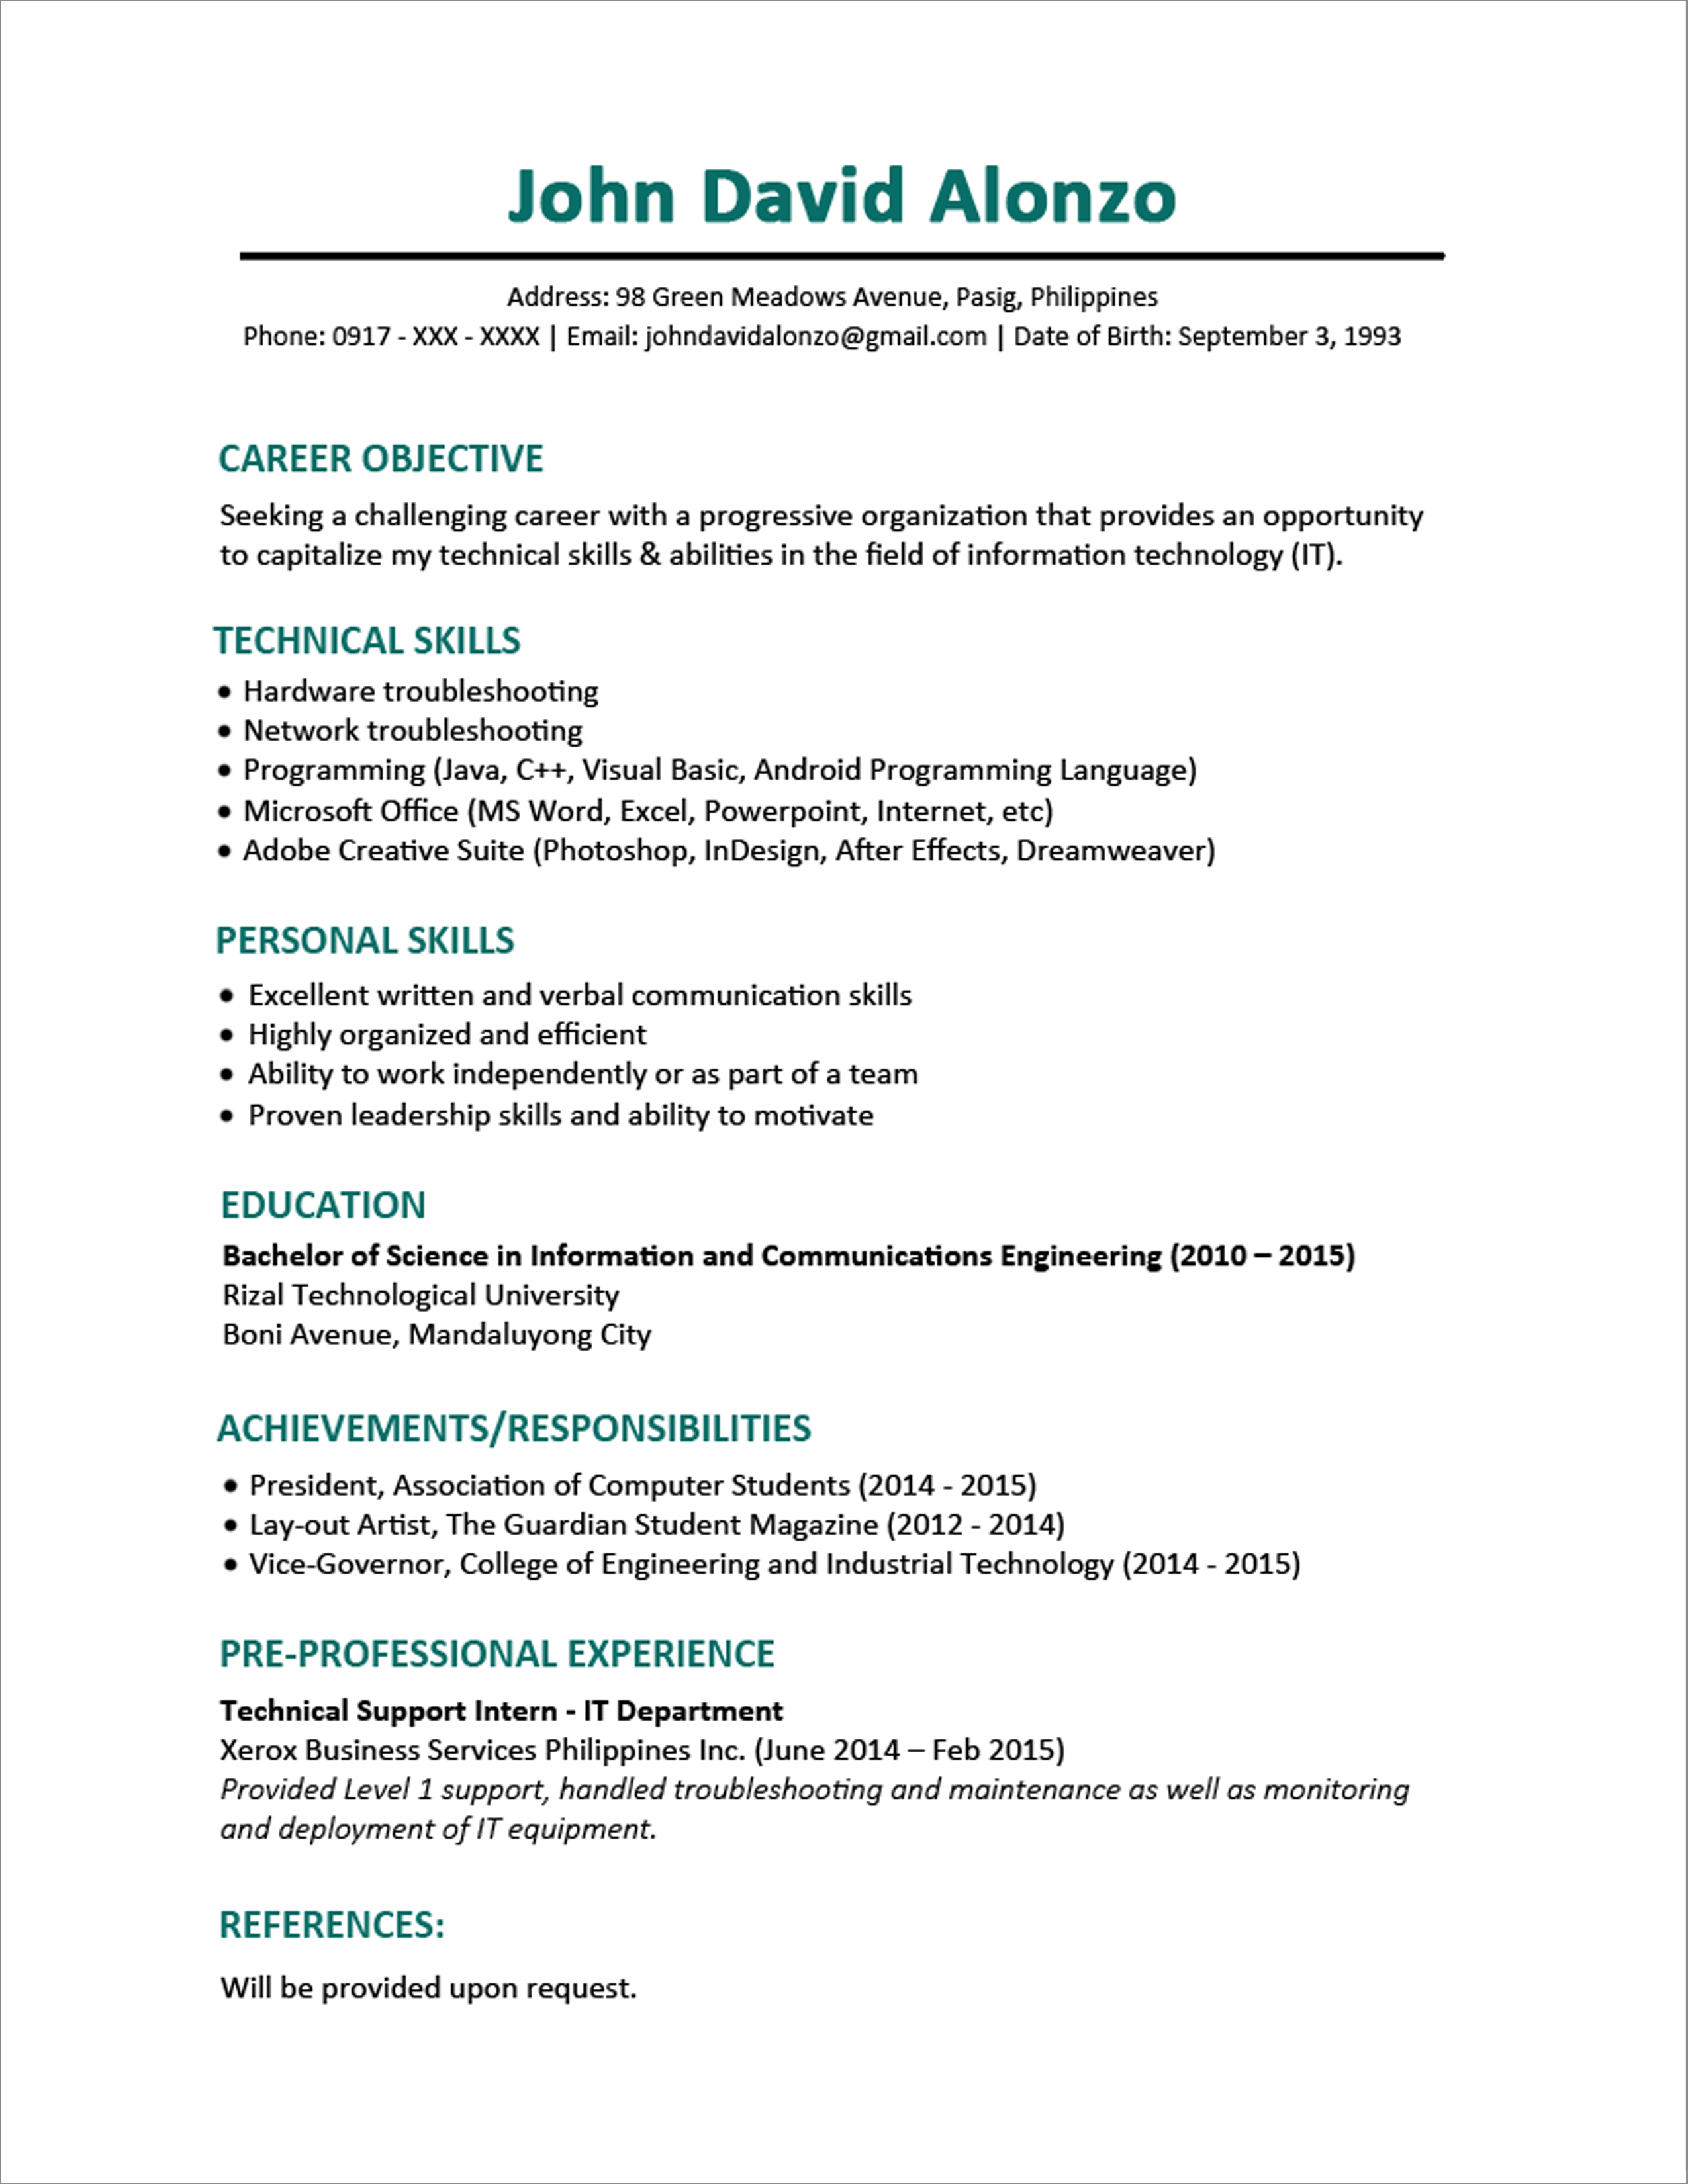 Resume Templates You Can Download 3 Resume objective